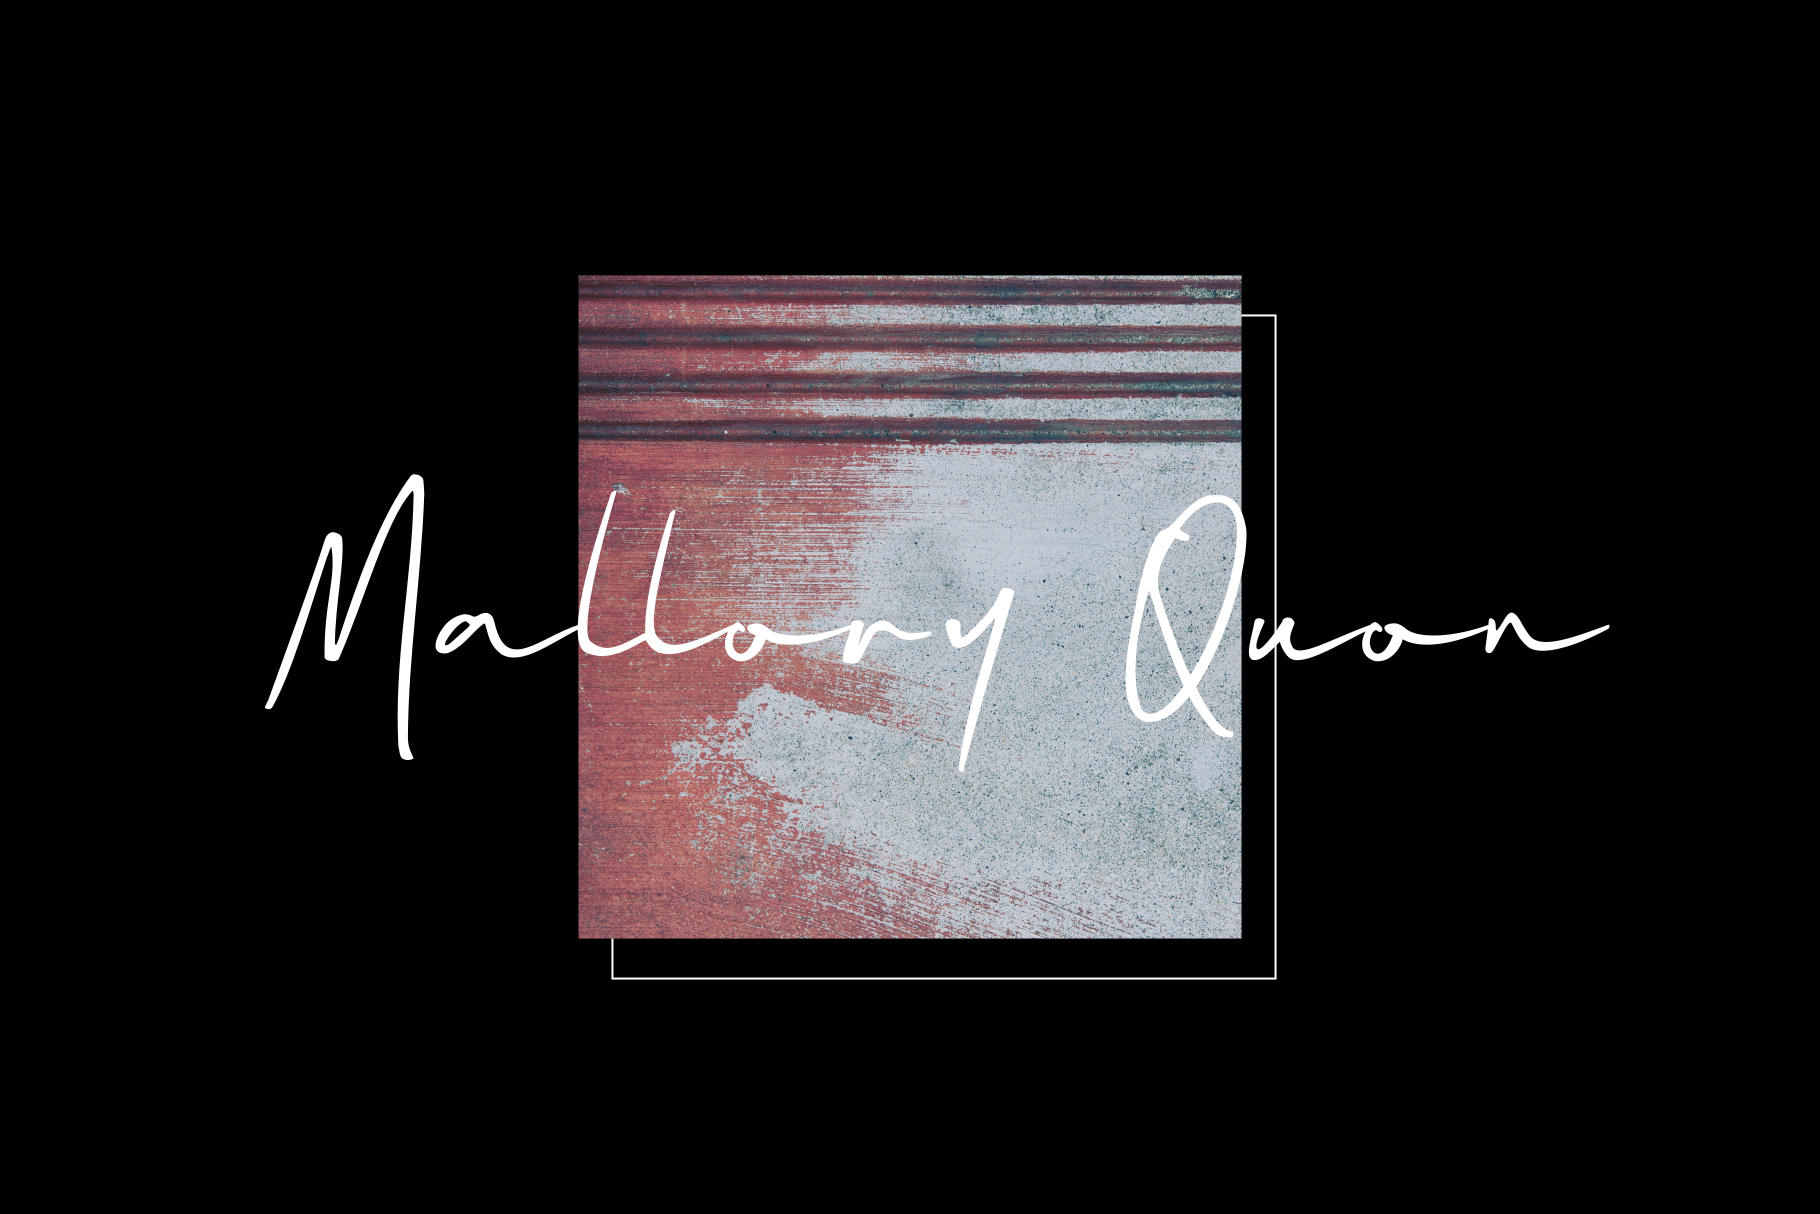 Mallory Quon example image 1